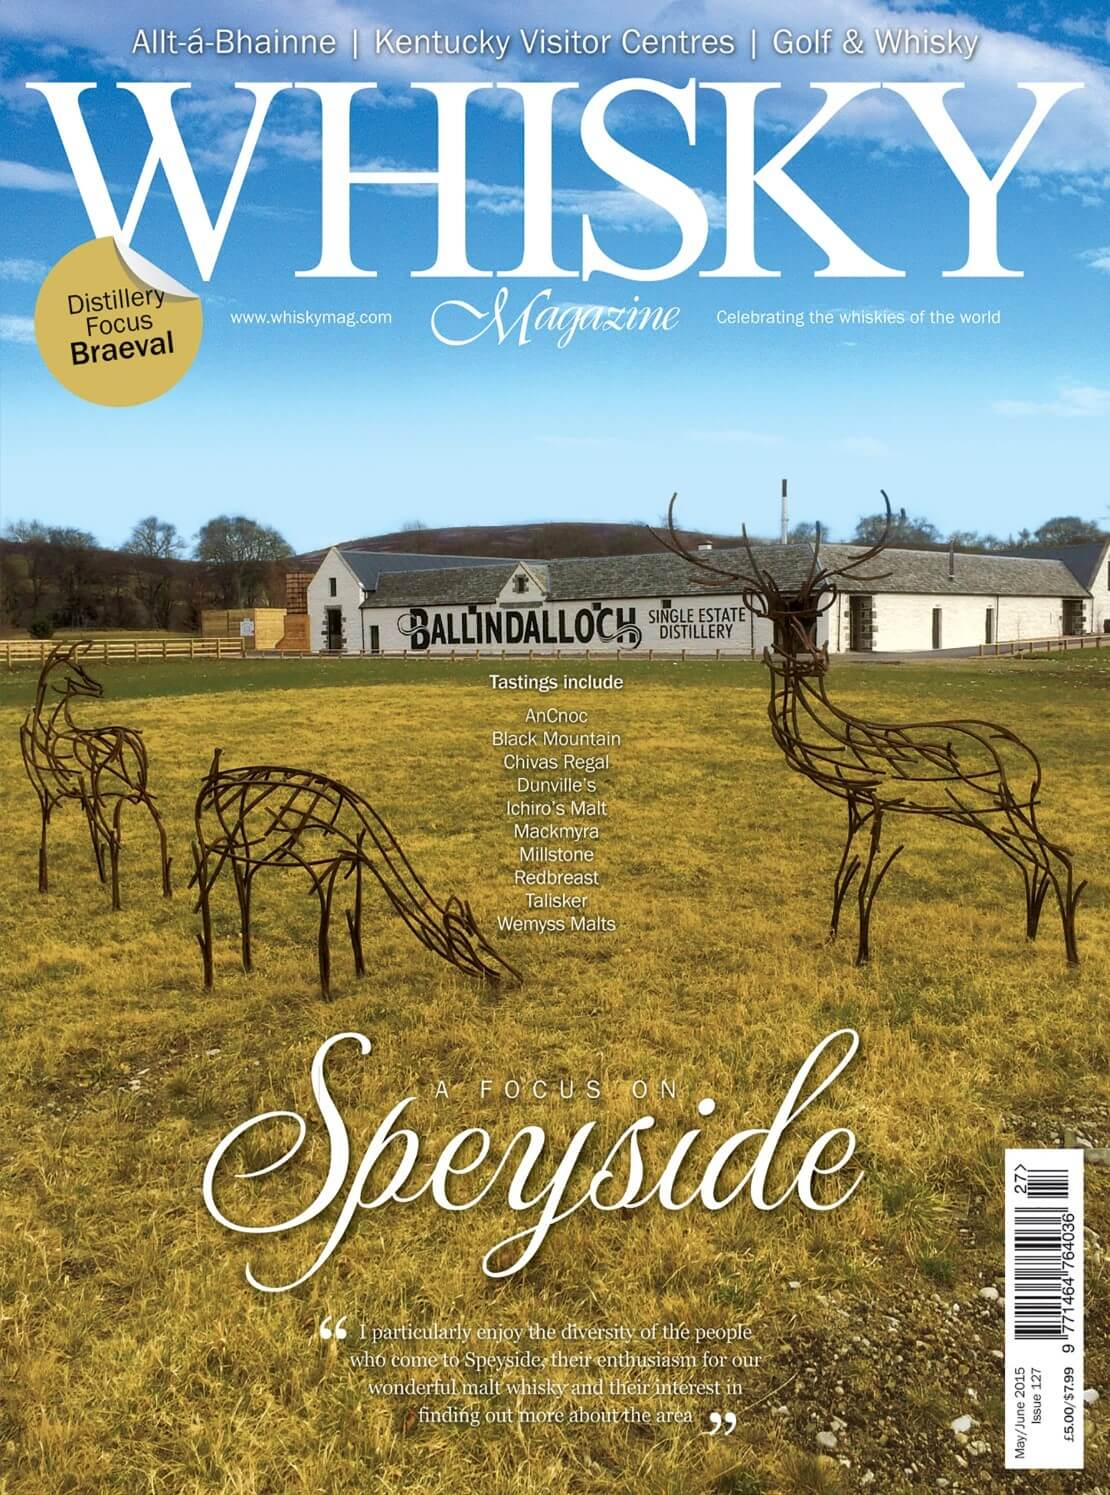 A Focus on Speyside Allt-á-Bhainne Kentucky Visitor Centres Golf and Whisky